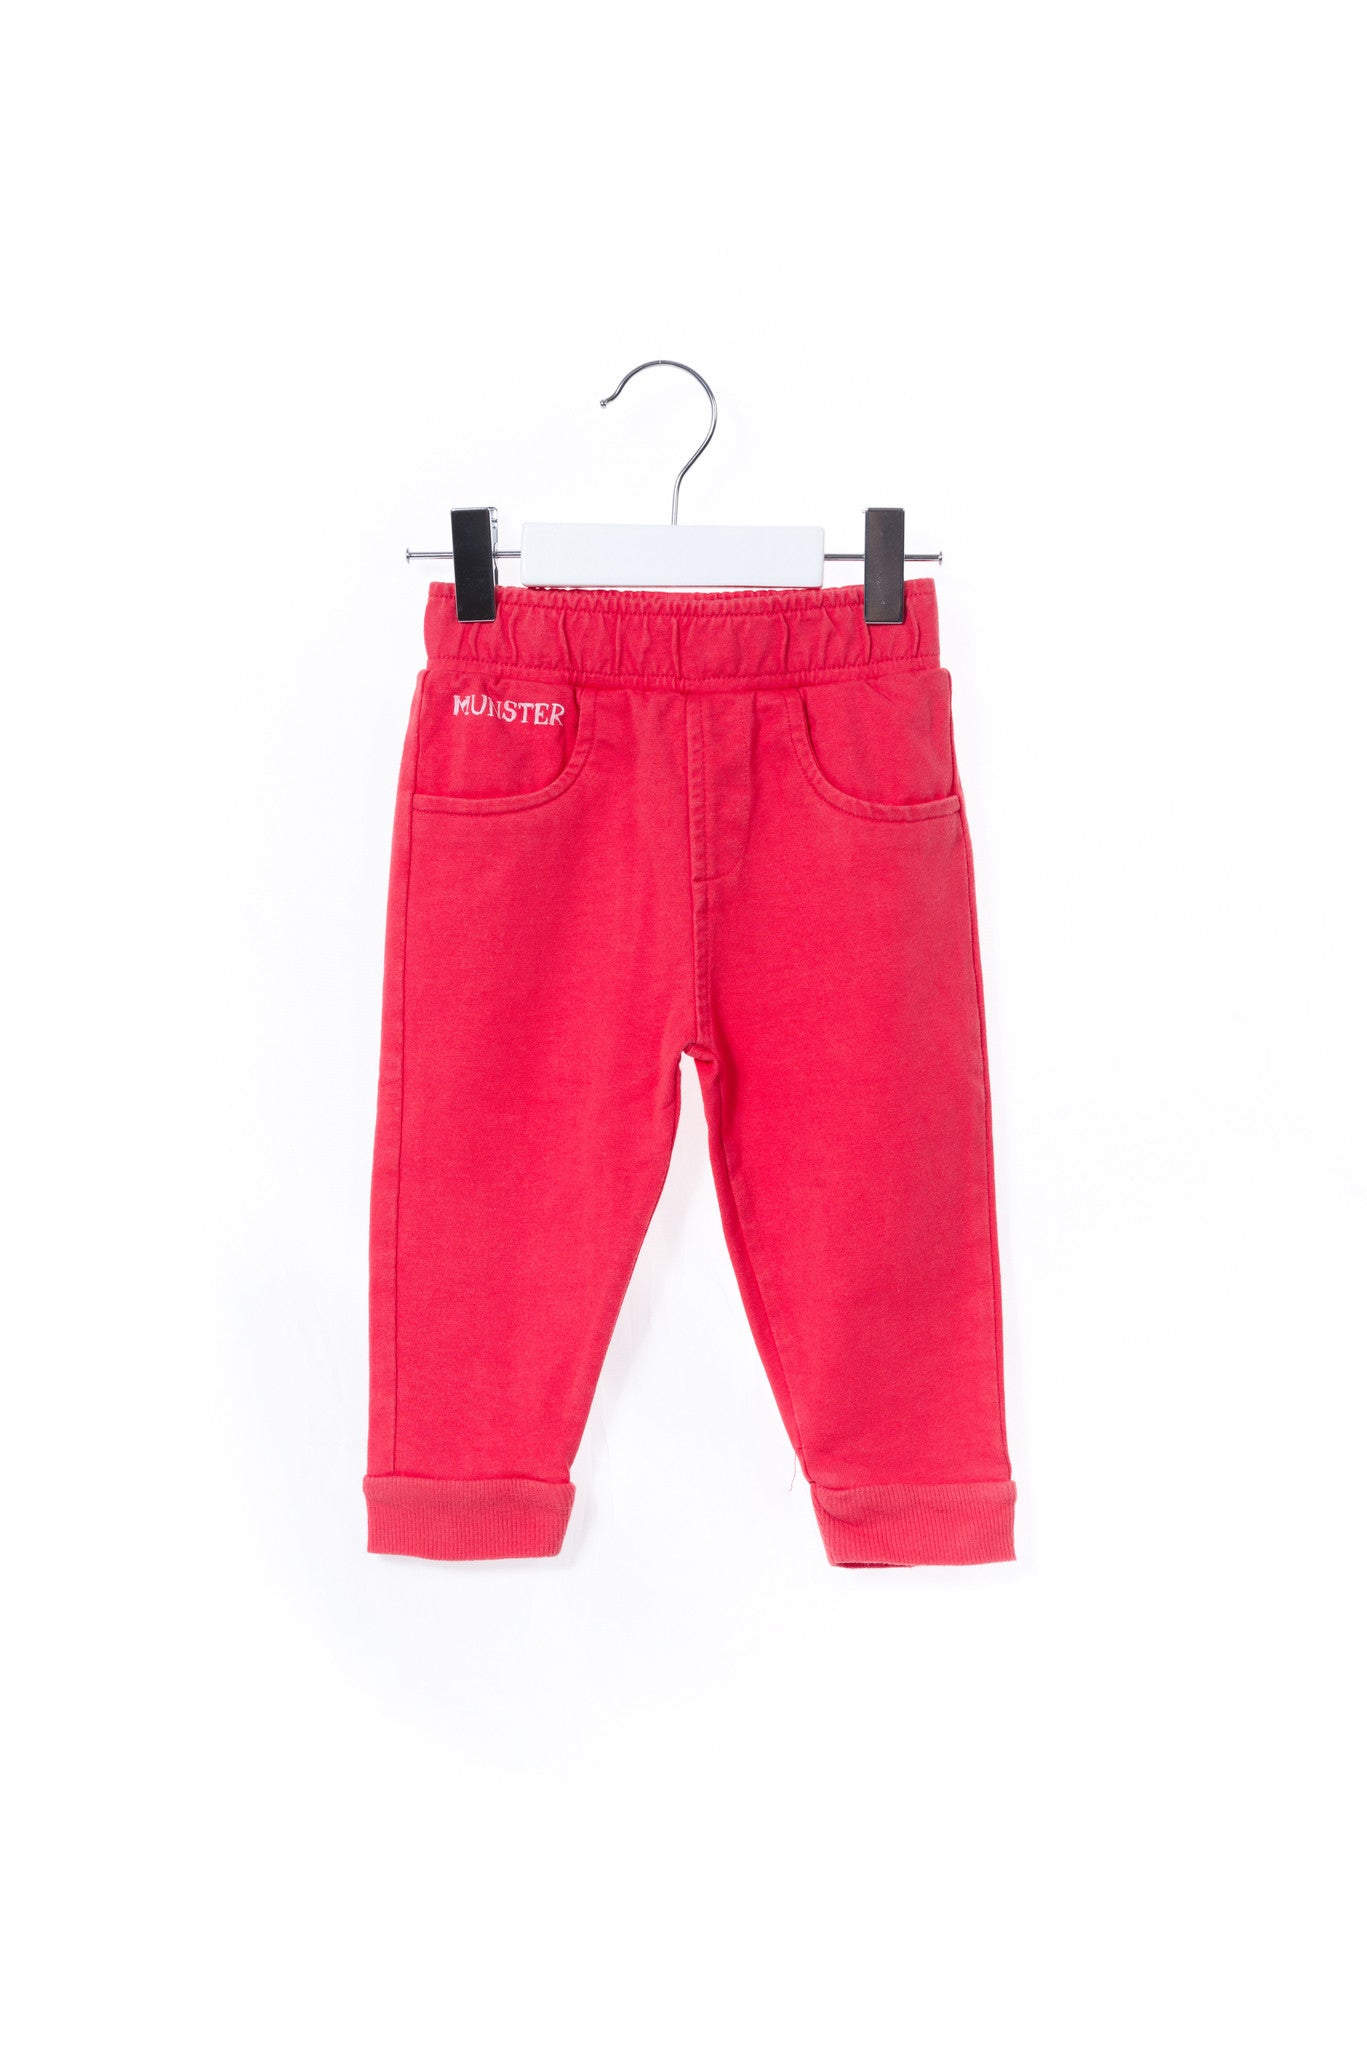 10001015 Munster Baby~Pants 12-18M at Retykle